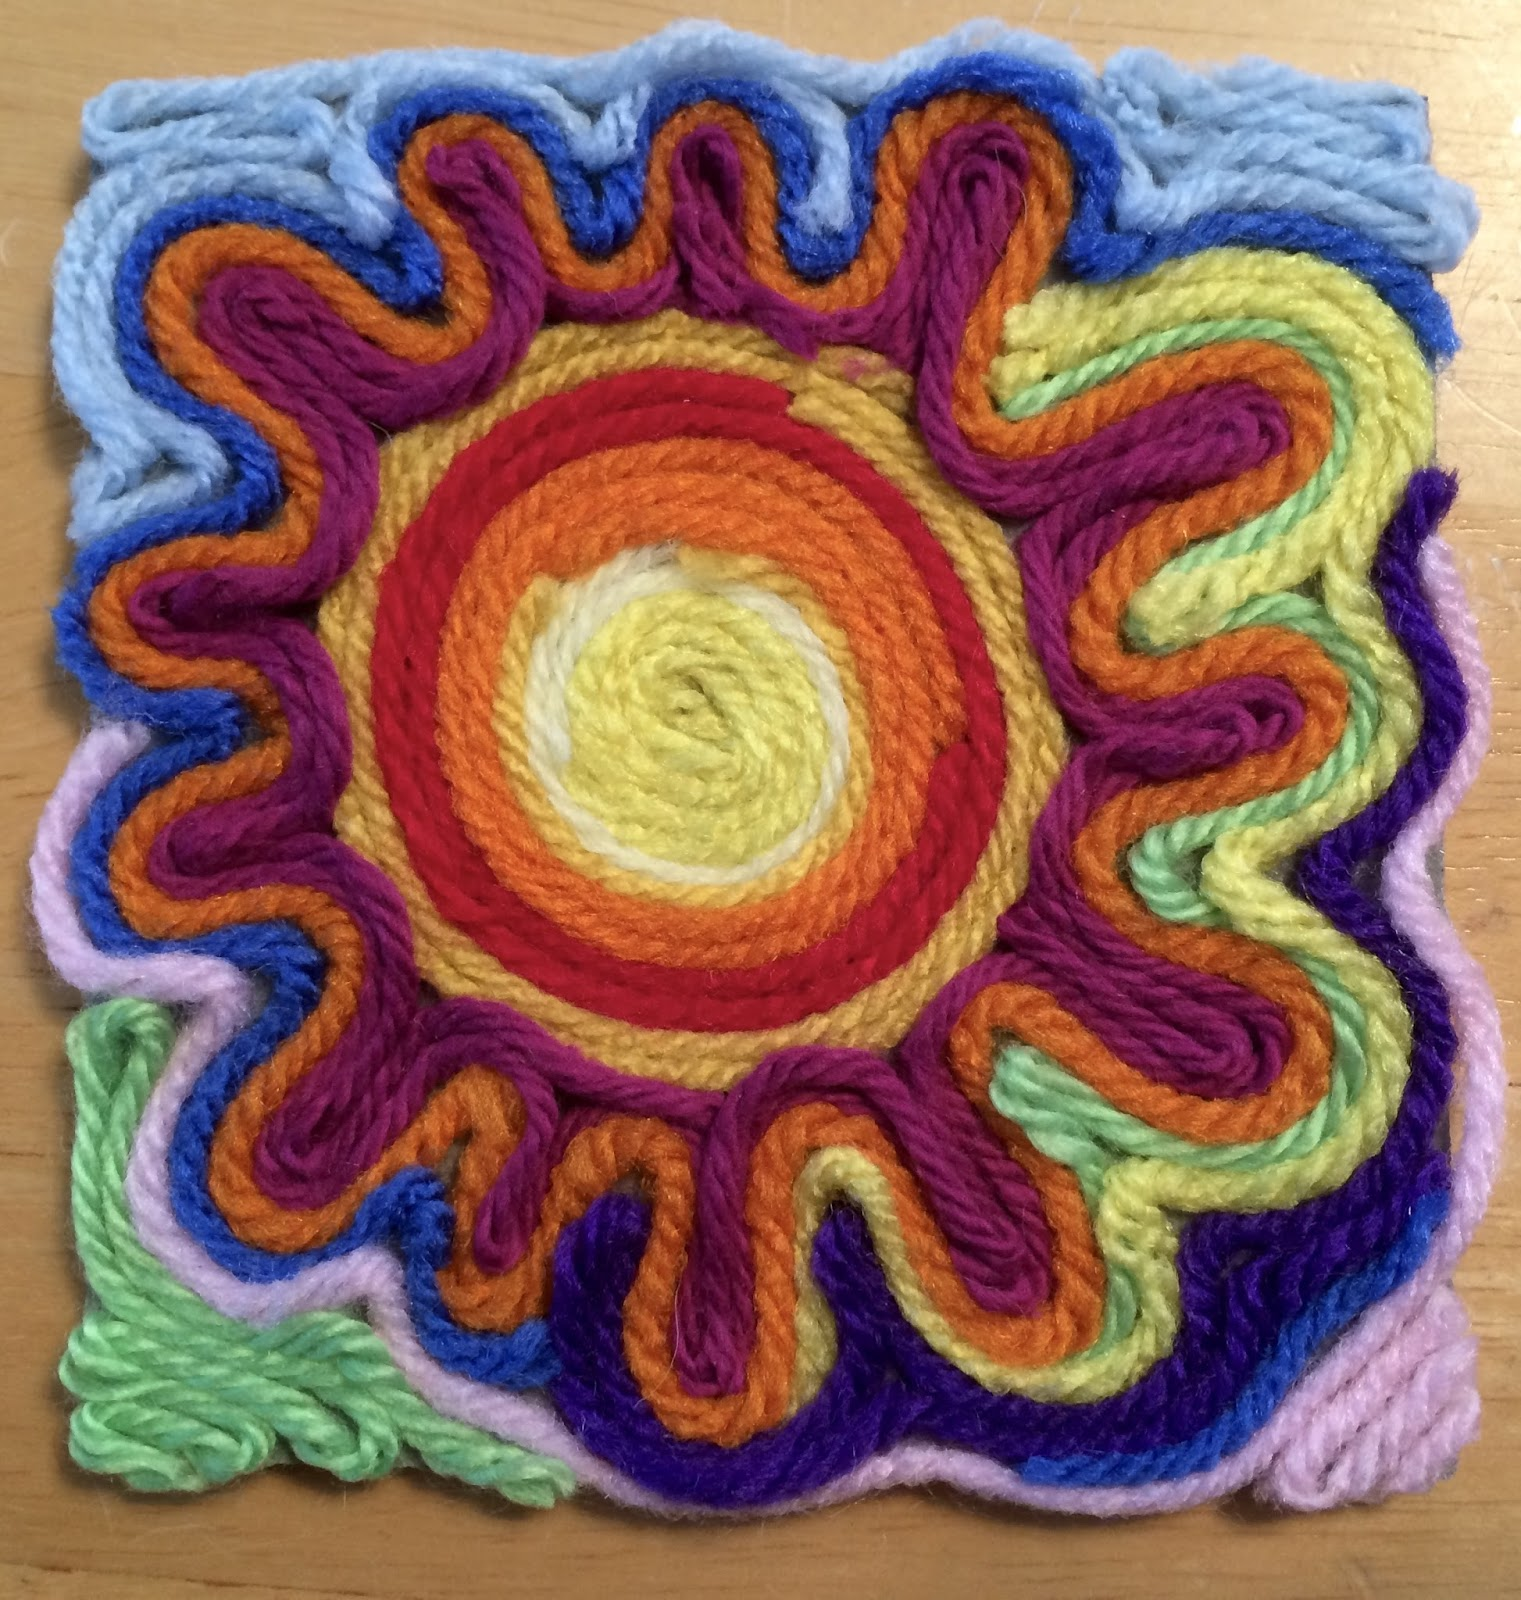 Kathy's AngelNik Designs & Art Project Ideas: Mexican Sun